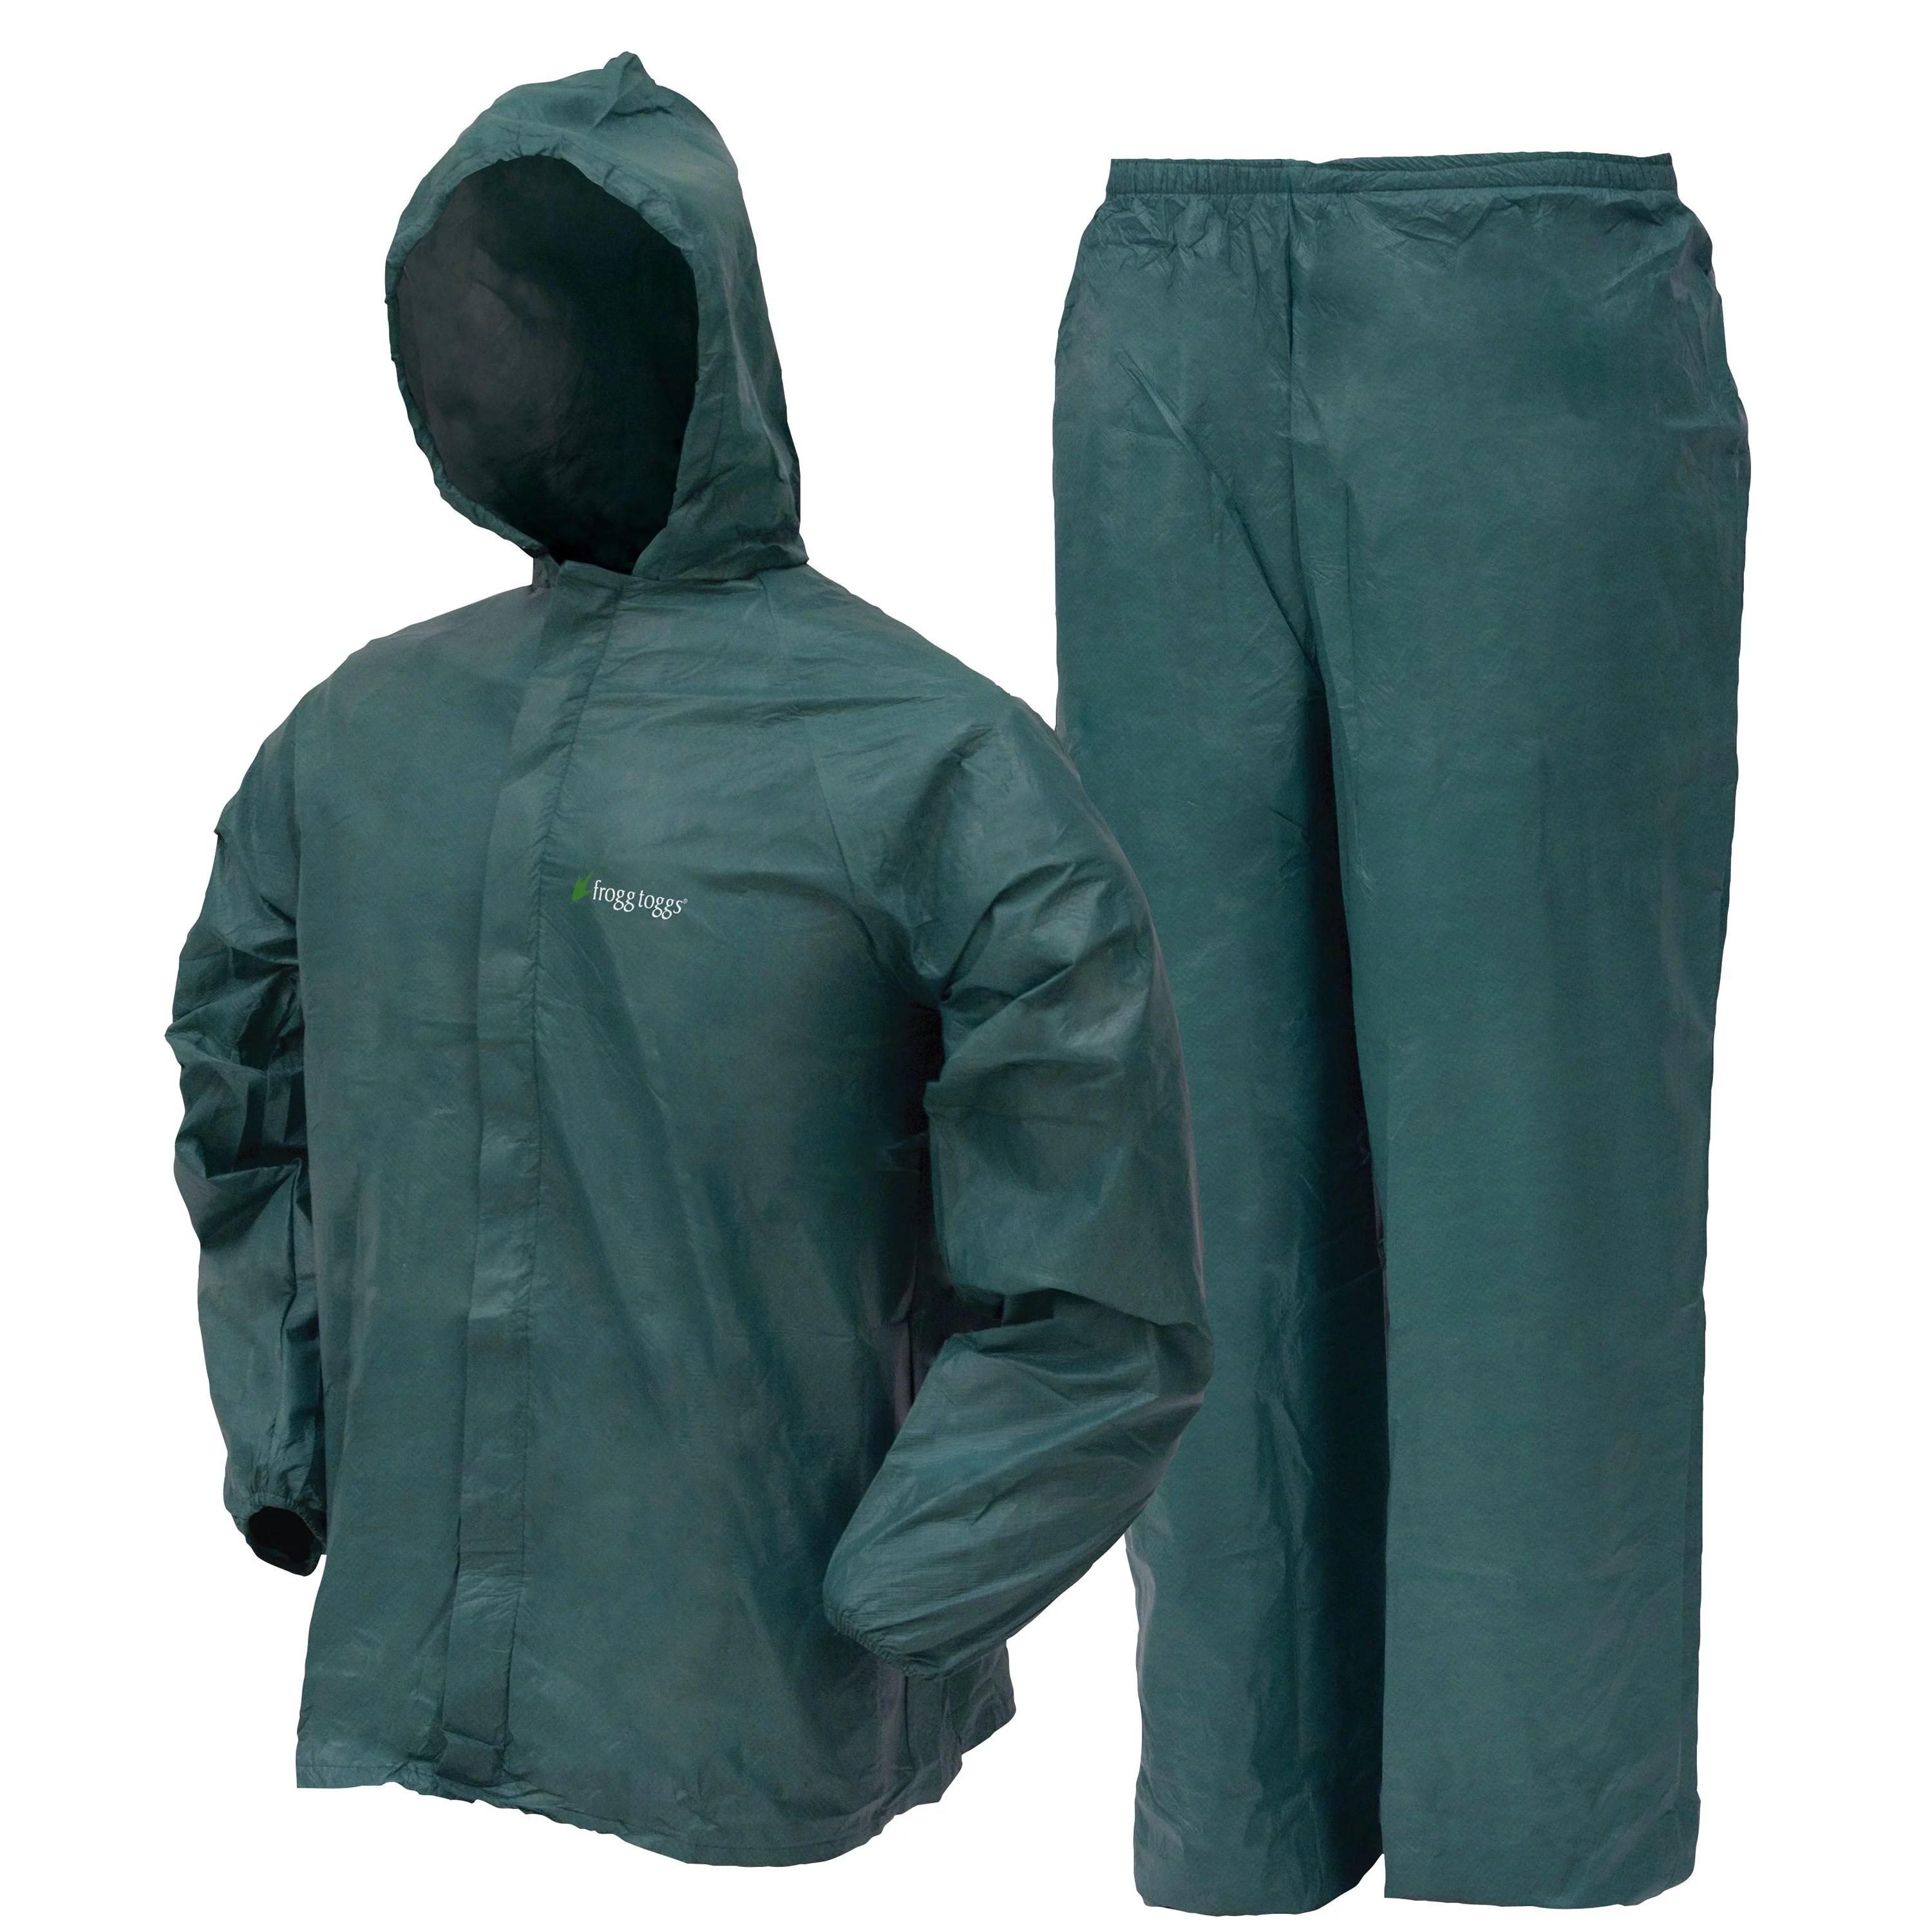 frogg toggs ultra lite2 waterproof breathable rain suit men s blue size x large